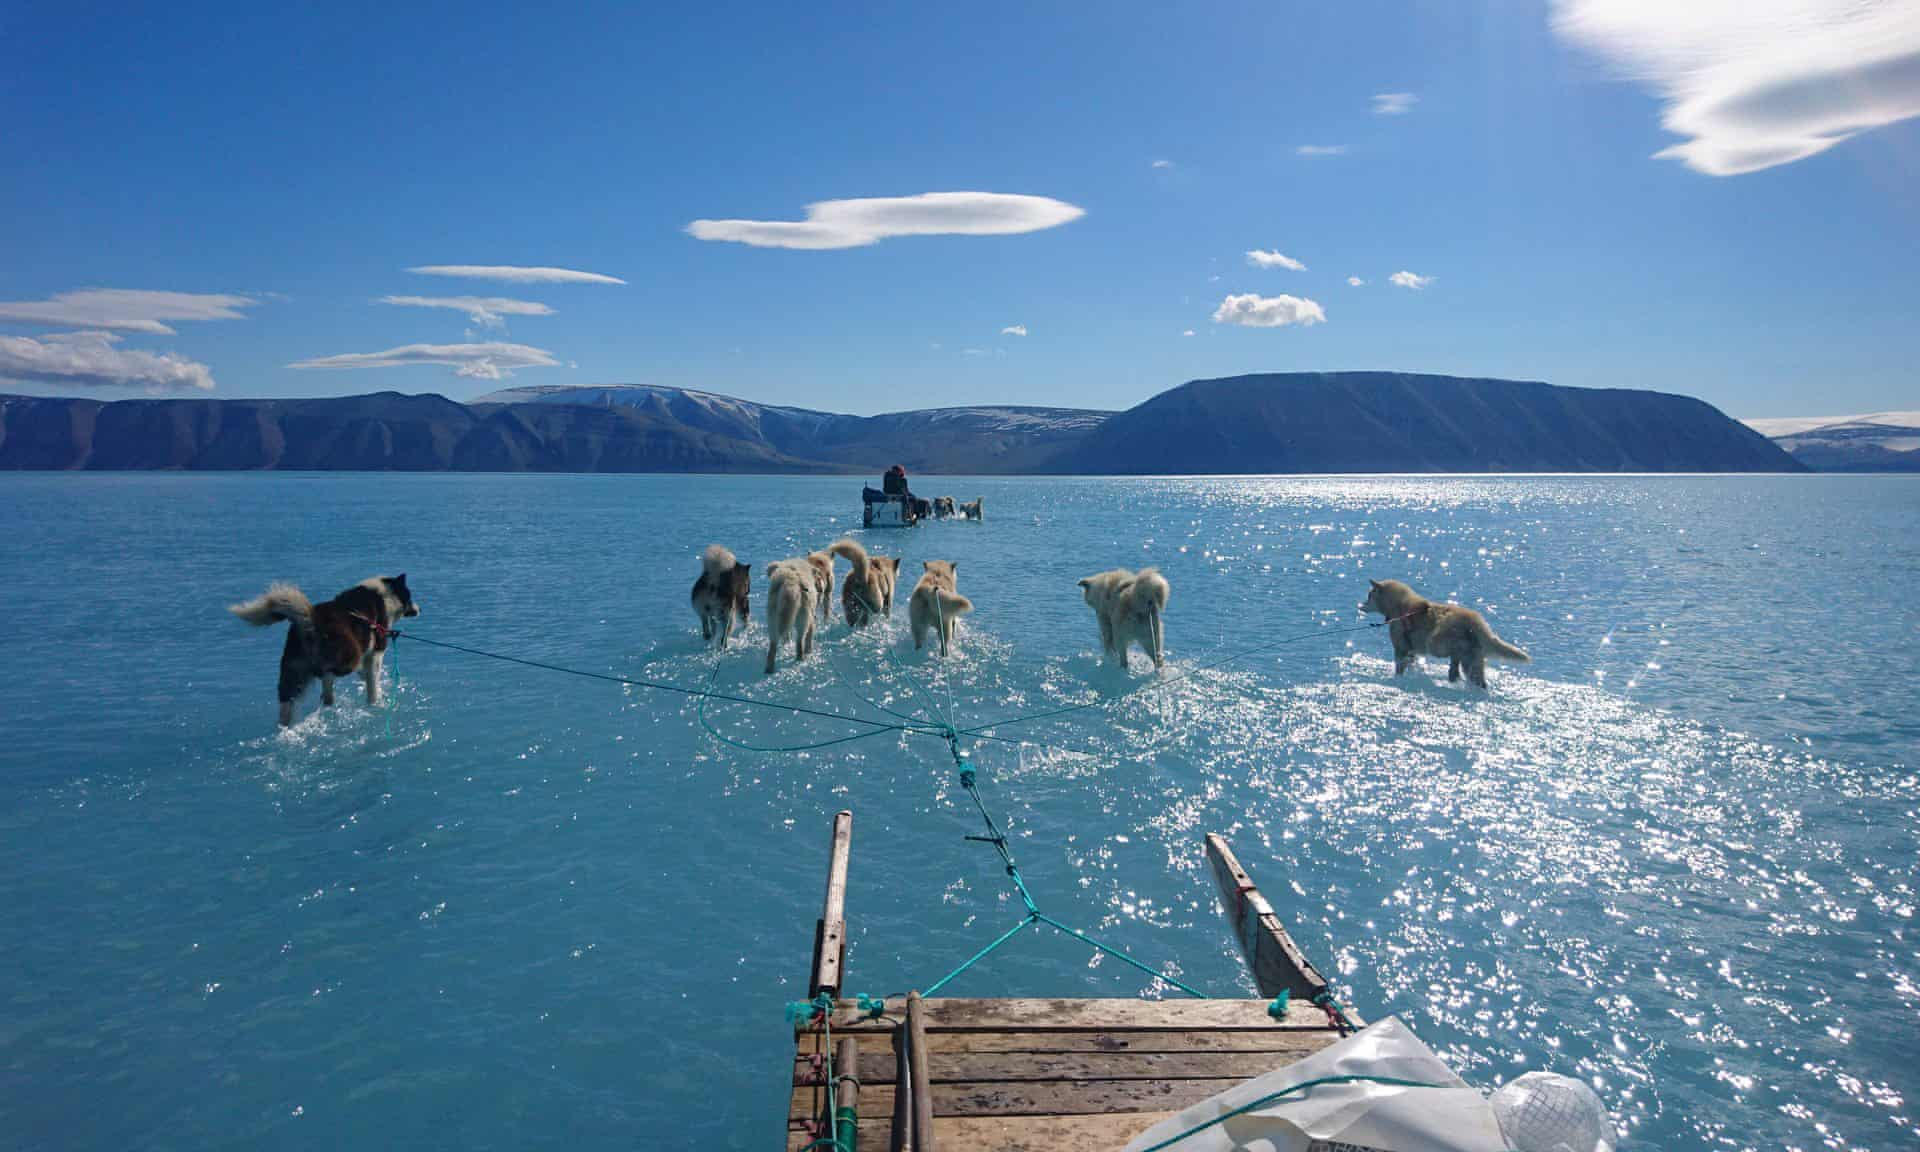 """SLED DOGS WADE THROUGH RECORD ICE MELT. - In June, 2019, a 40F (!! 22.2C) spike in Arctic temps made possible this image of sled dogs wading through surface water melt. It's a great photo to share because it shows how record sea ice melt is causing rapidly changing conditions for climate scientists, and helps us understand the connection to sea-level rise, which is a concern for those of us who live & work in coastal cities.""""Our climate model simulations expect there to be a general decline in the length of the sea ice season around Greenland, [but] how fast and how much is very much dependent on how much global temperature rises.""""— Ruth Mottram, climate scientist at the Danish Meteorological Institute. Her colleague Steffen Olsen took the shot June 13, 2019 on a routine mission through the Inglefield Gulf in northwest Greenland."""